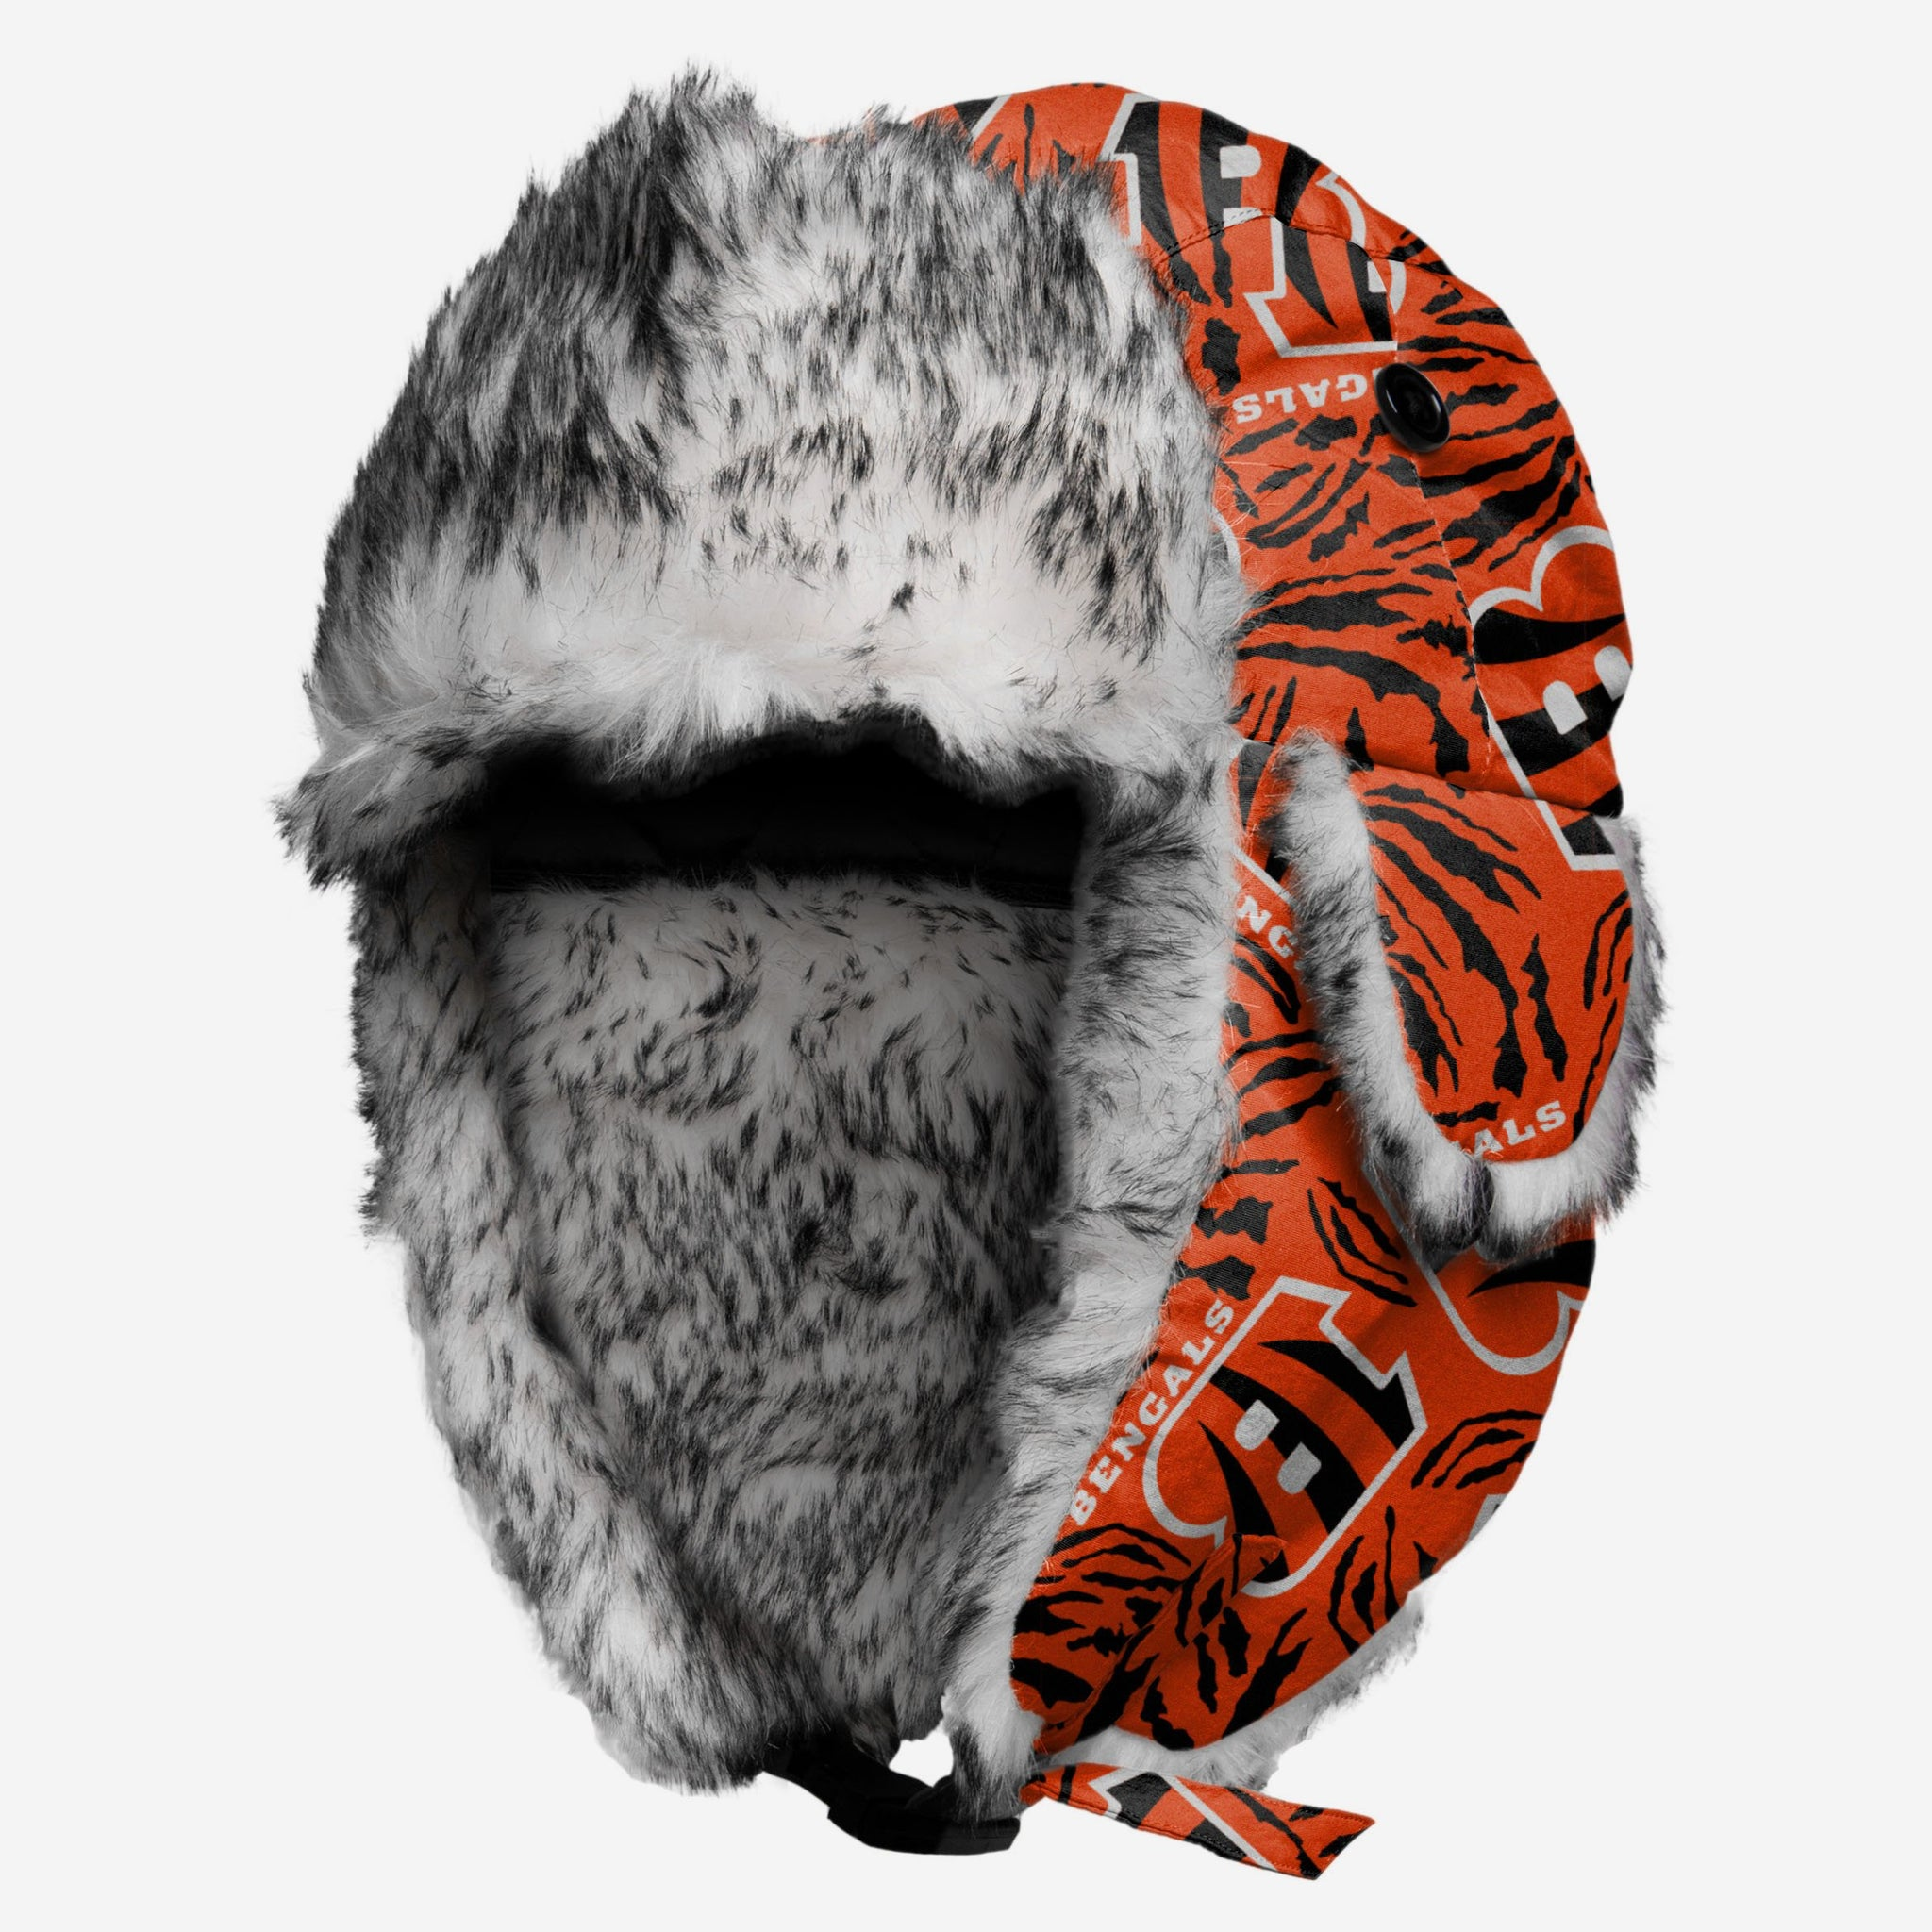 267a3e09 Cincinnati Bengals Repeat Print Trapper Hat